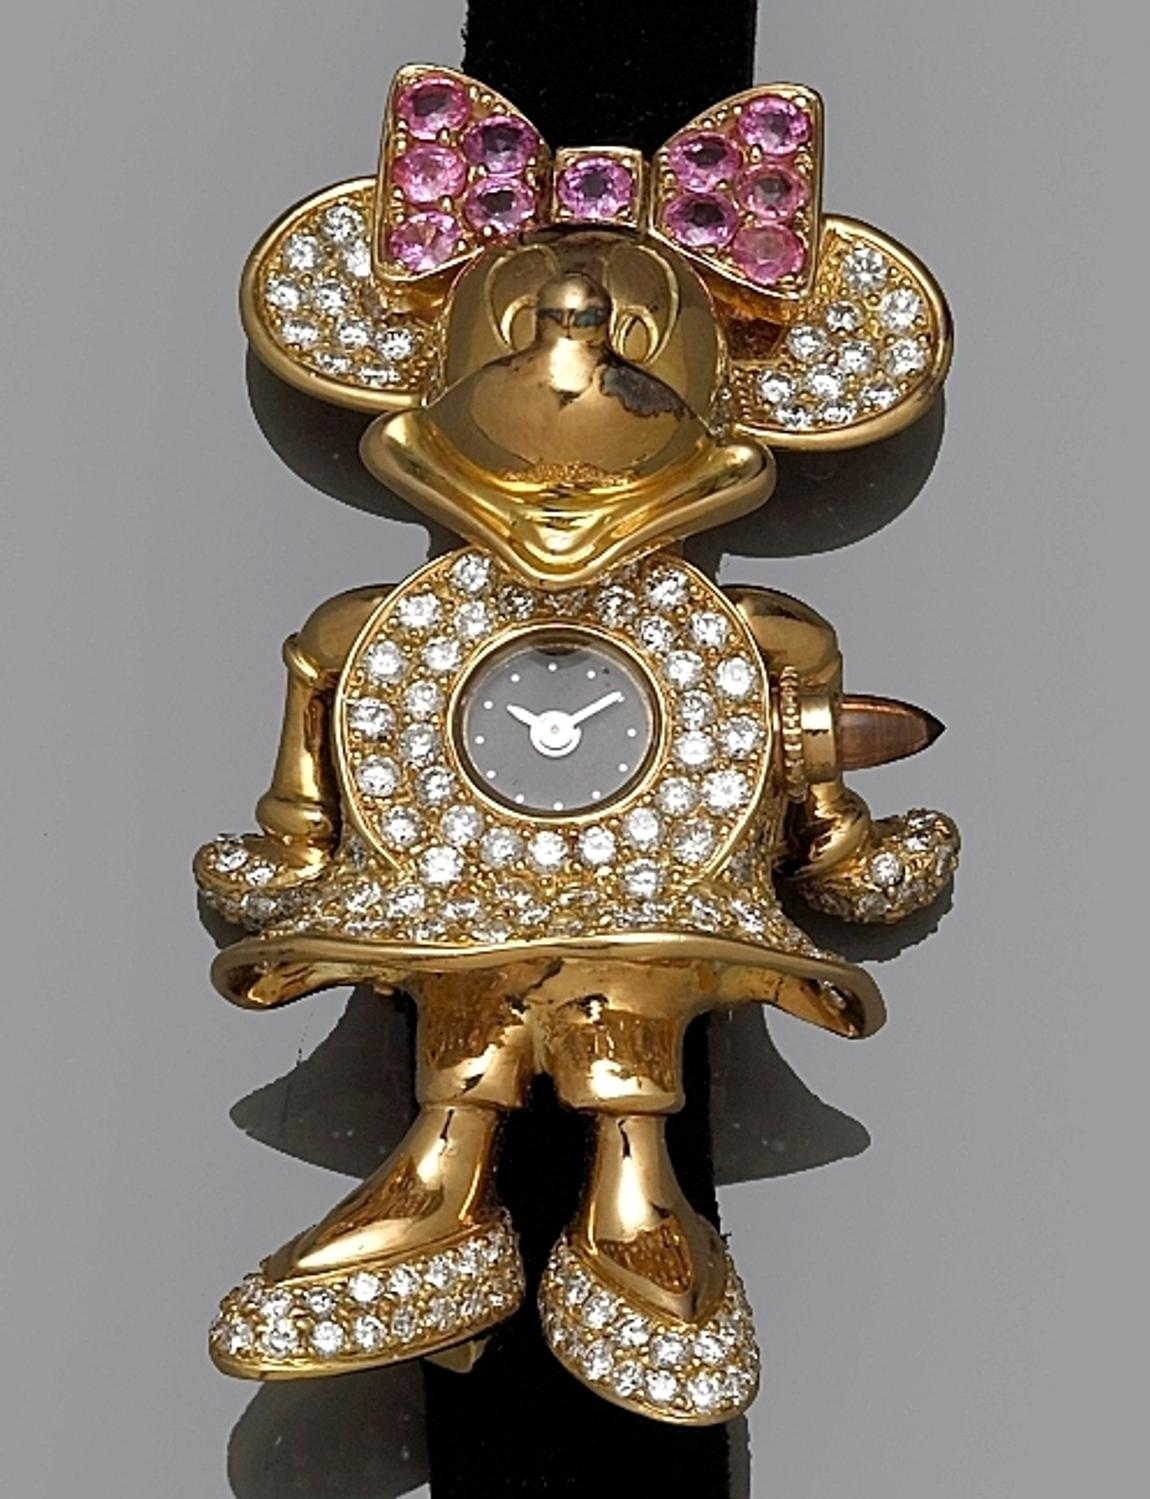 Salon jewelry and watches at bonhams butterfields in march artwire press release from for Jewelry watches